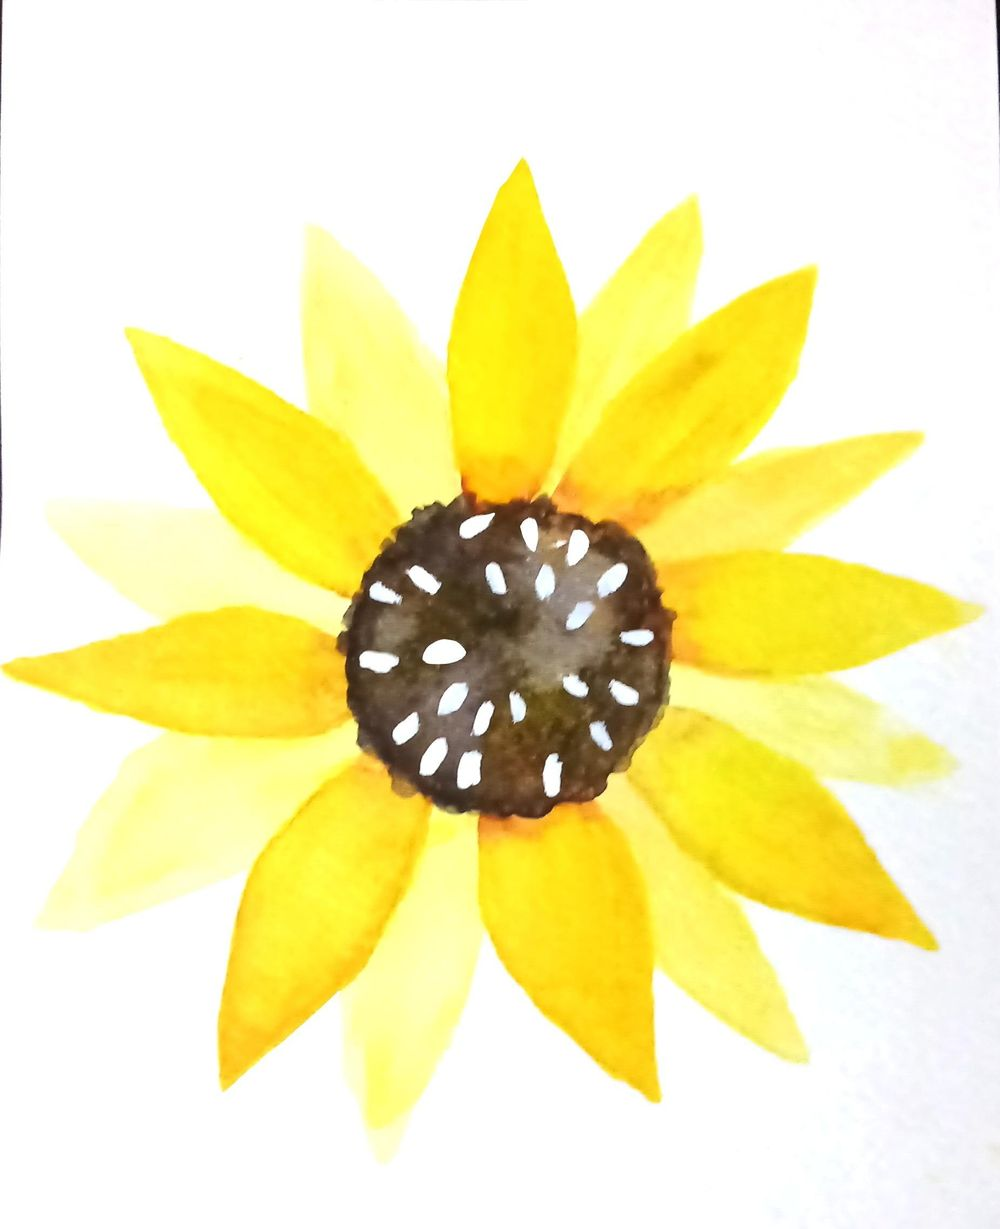 Botanical watercolors painting - image 1 - student project